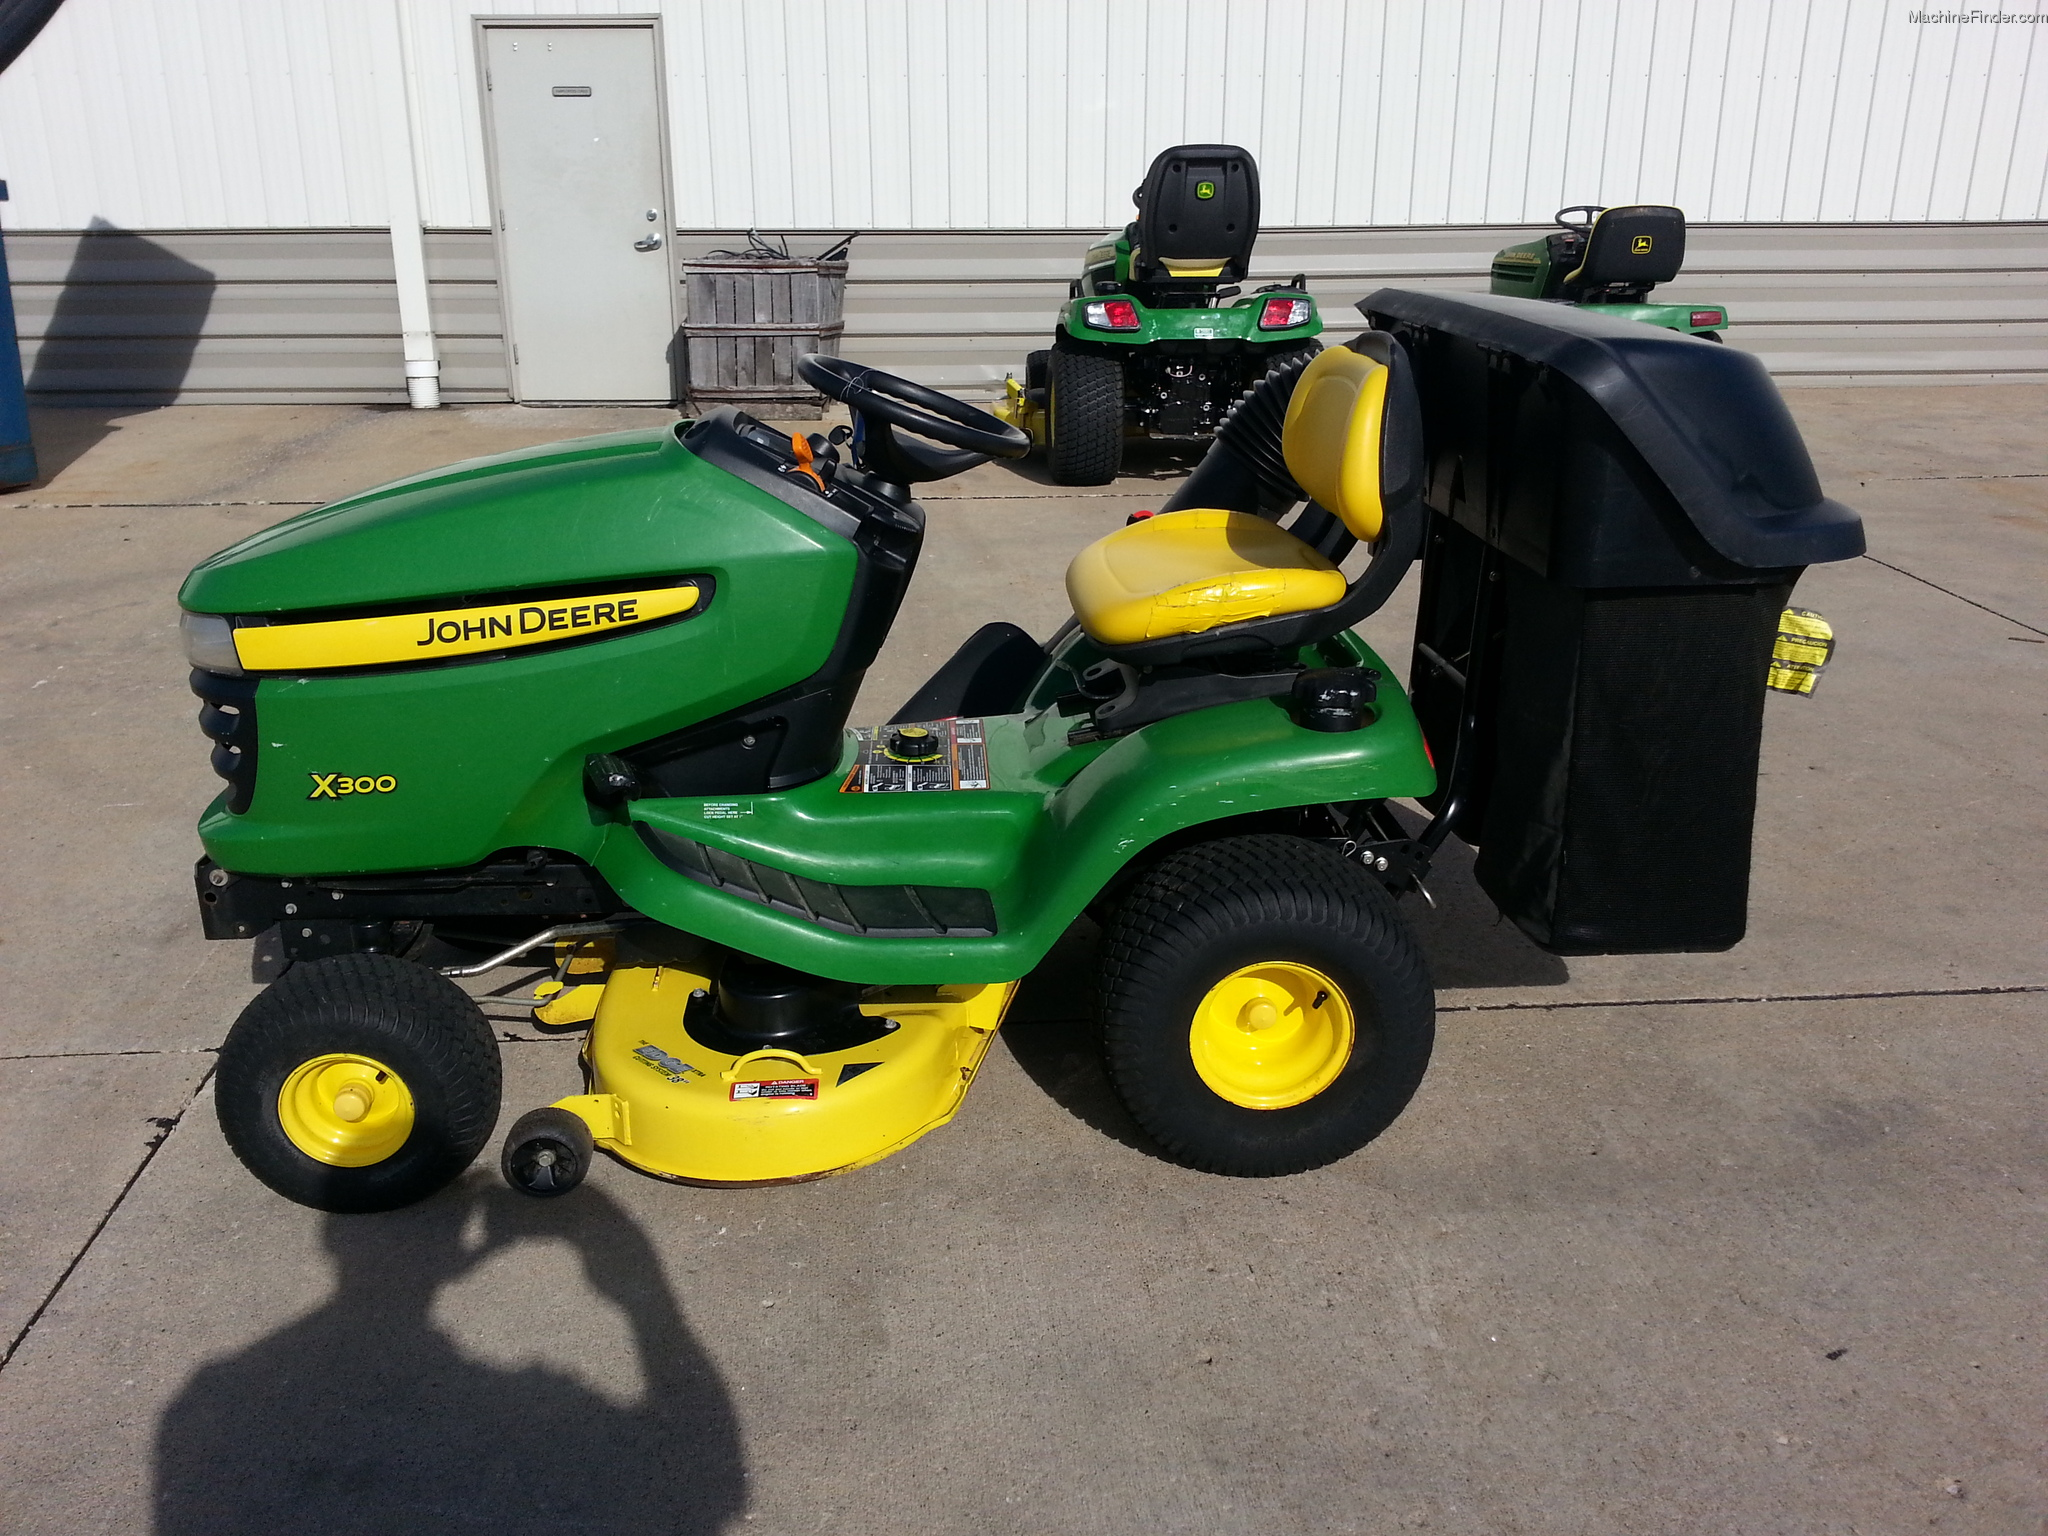 2008 john deere x300 lawn garden and commercial mowing. Black Bedroom Furniture Sets. Home Design Ideas